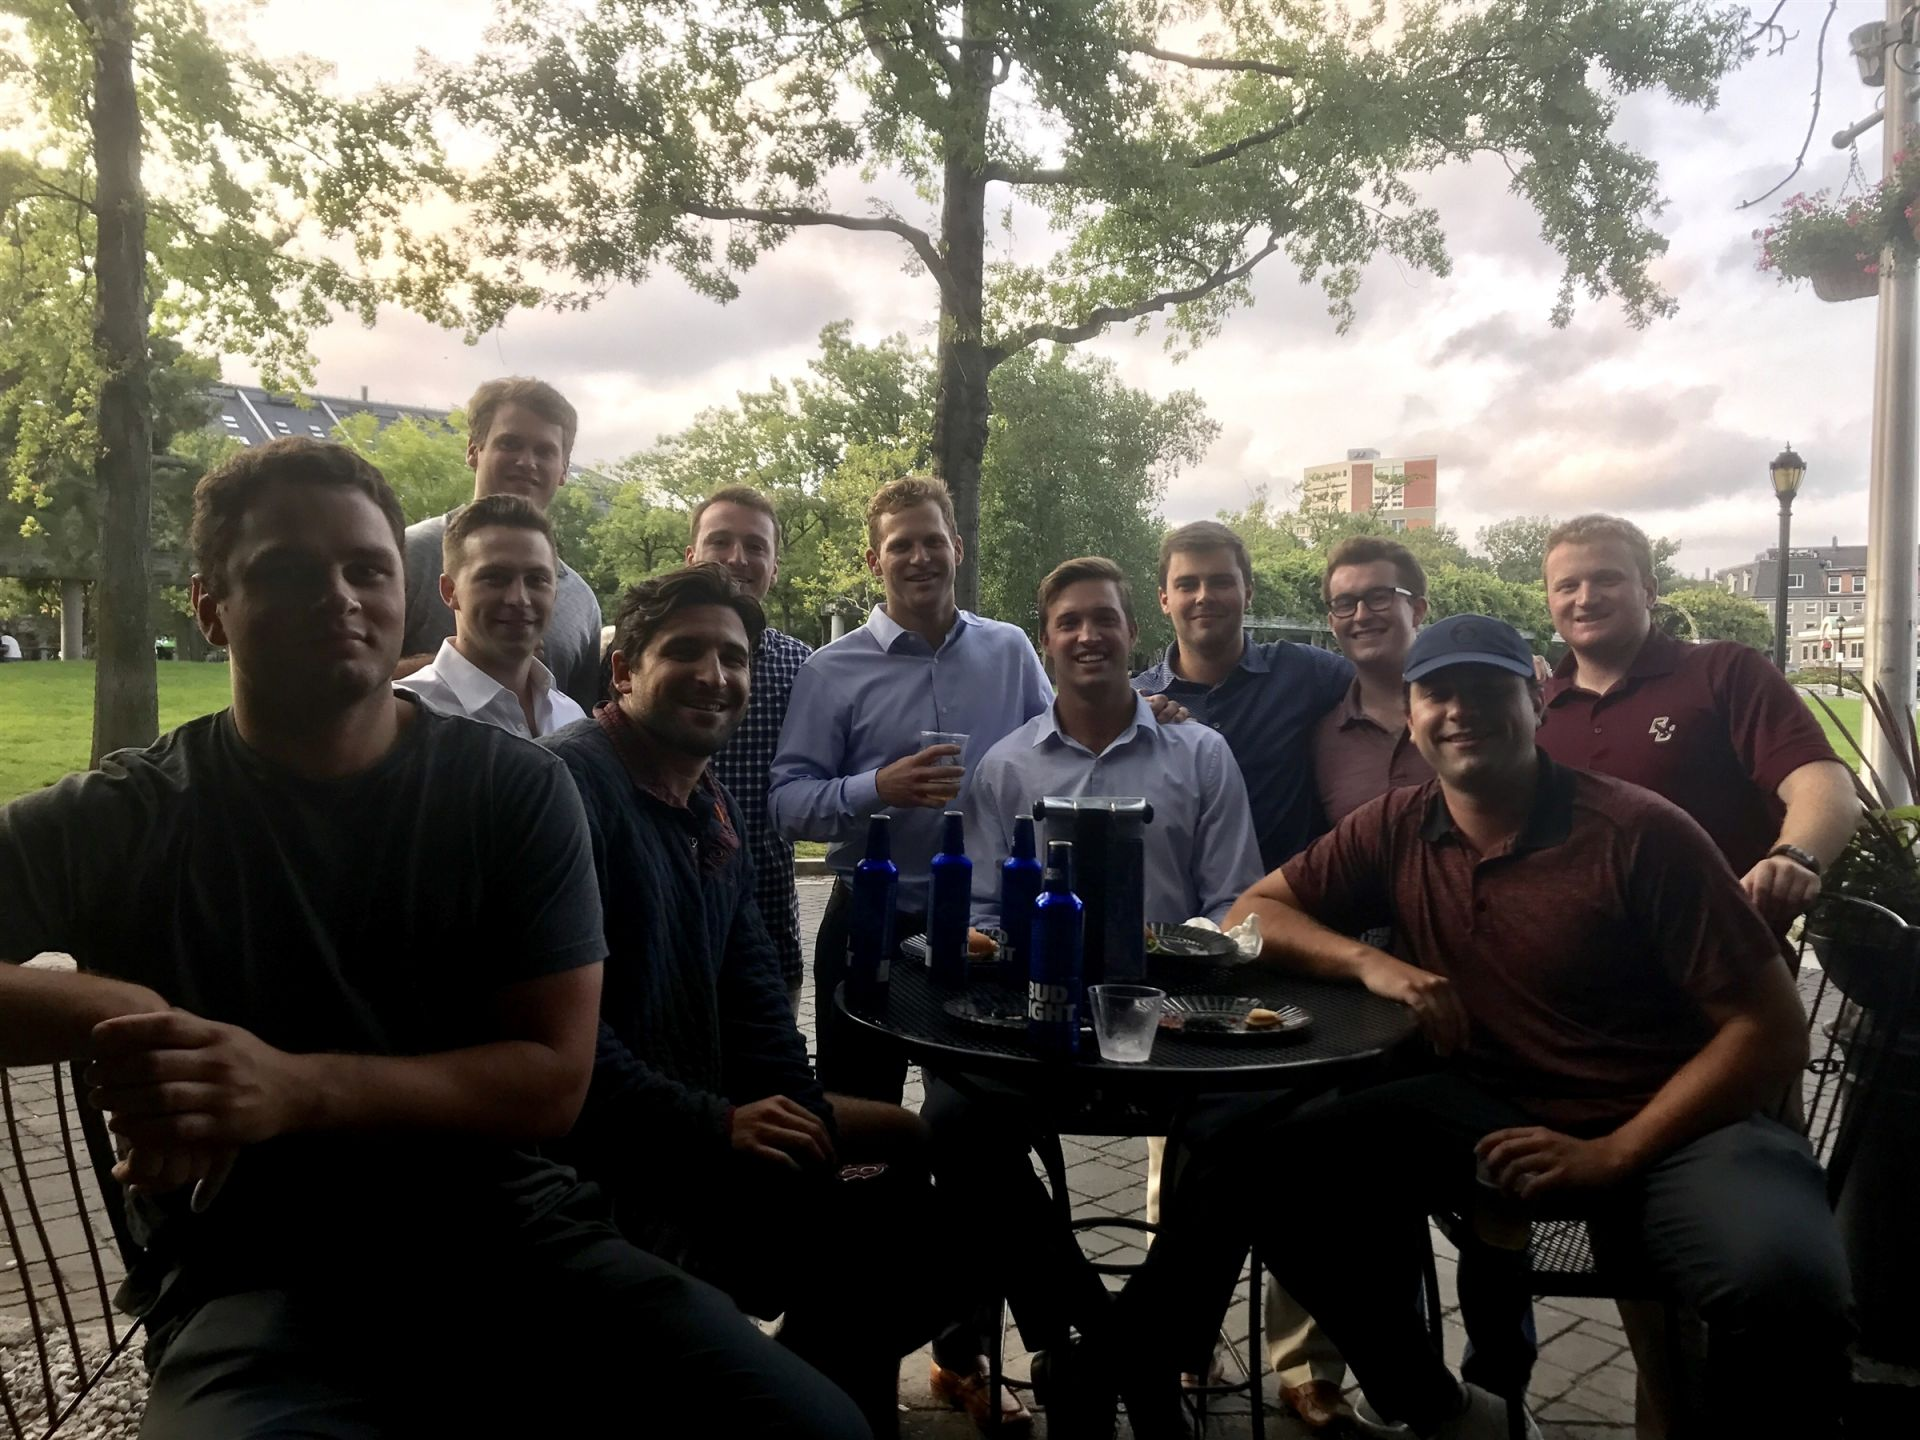 Recent Alumni Gathering at Tia's, August 21, 2018.  Seated: Charlie Hill '14, Danny Seibel '14, Max Gustafson '14, Jimmy Hatton '14 Standing: Mike Leary '13, Ryan Bathon '14 , Harry Roberson '14, Greg Plumb '14, Jack O'Hara '13, Matt O'Neal '15, Drew Morrissey '14.